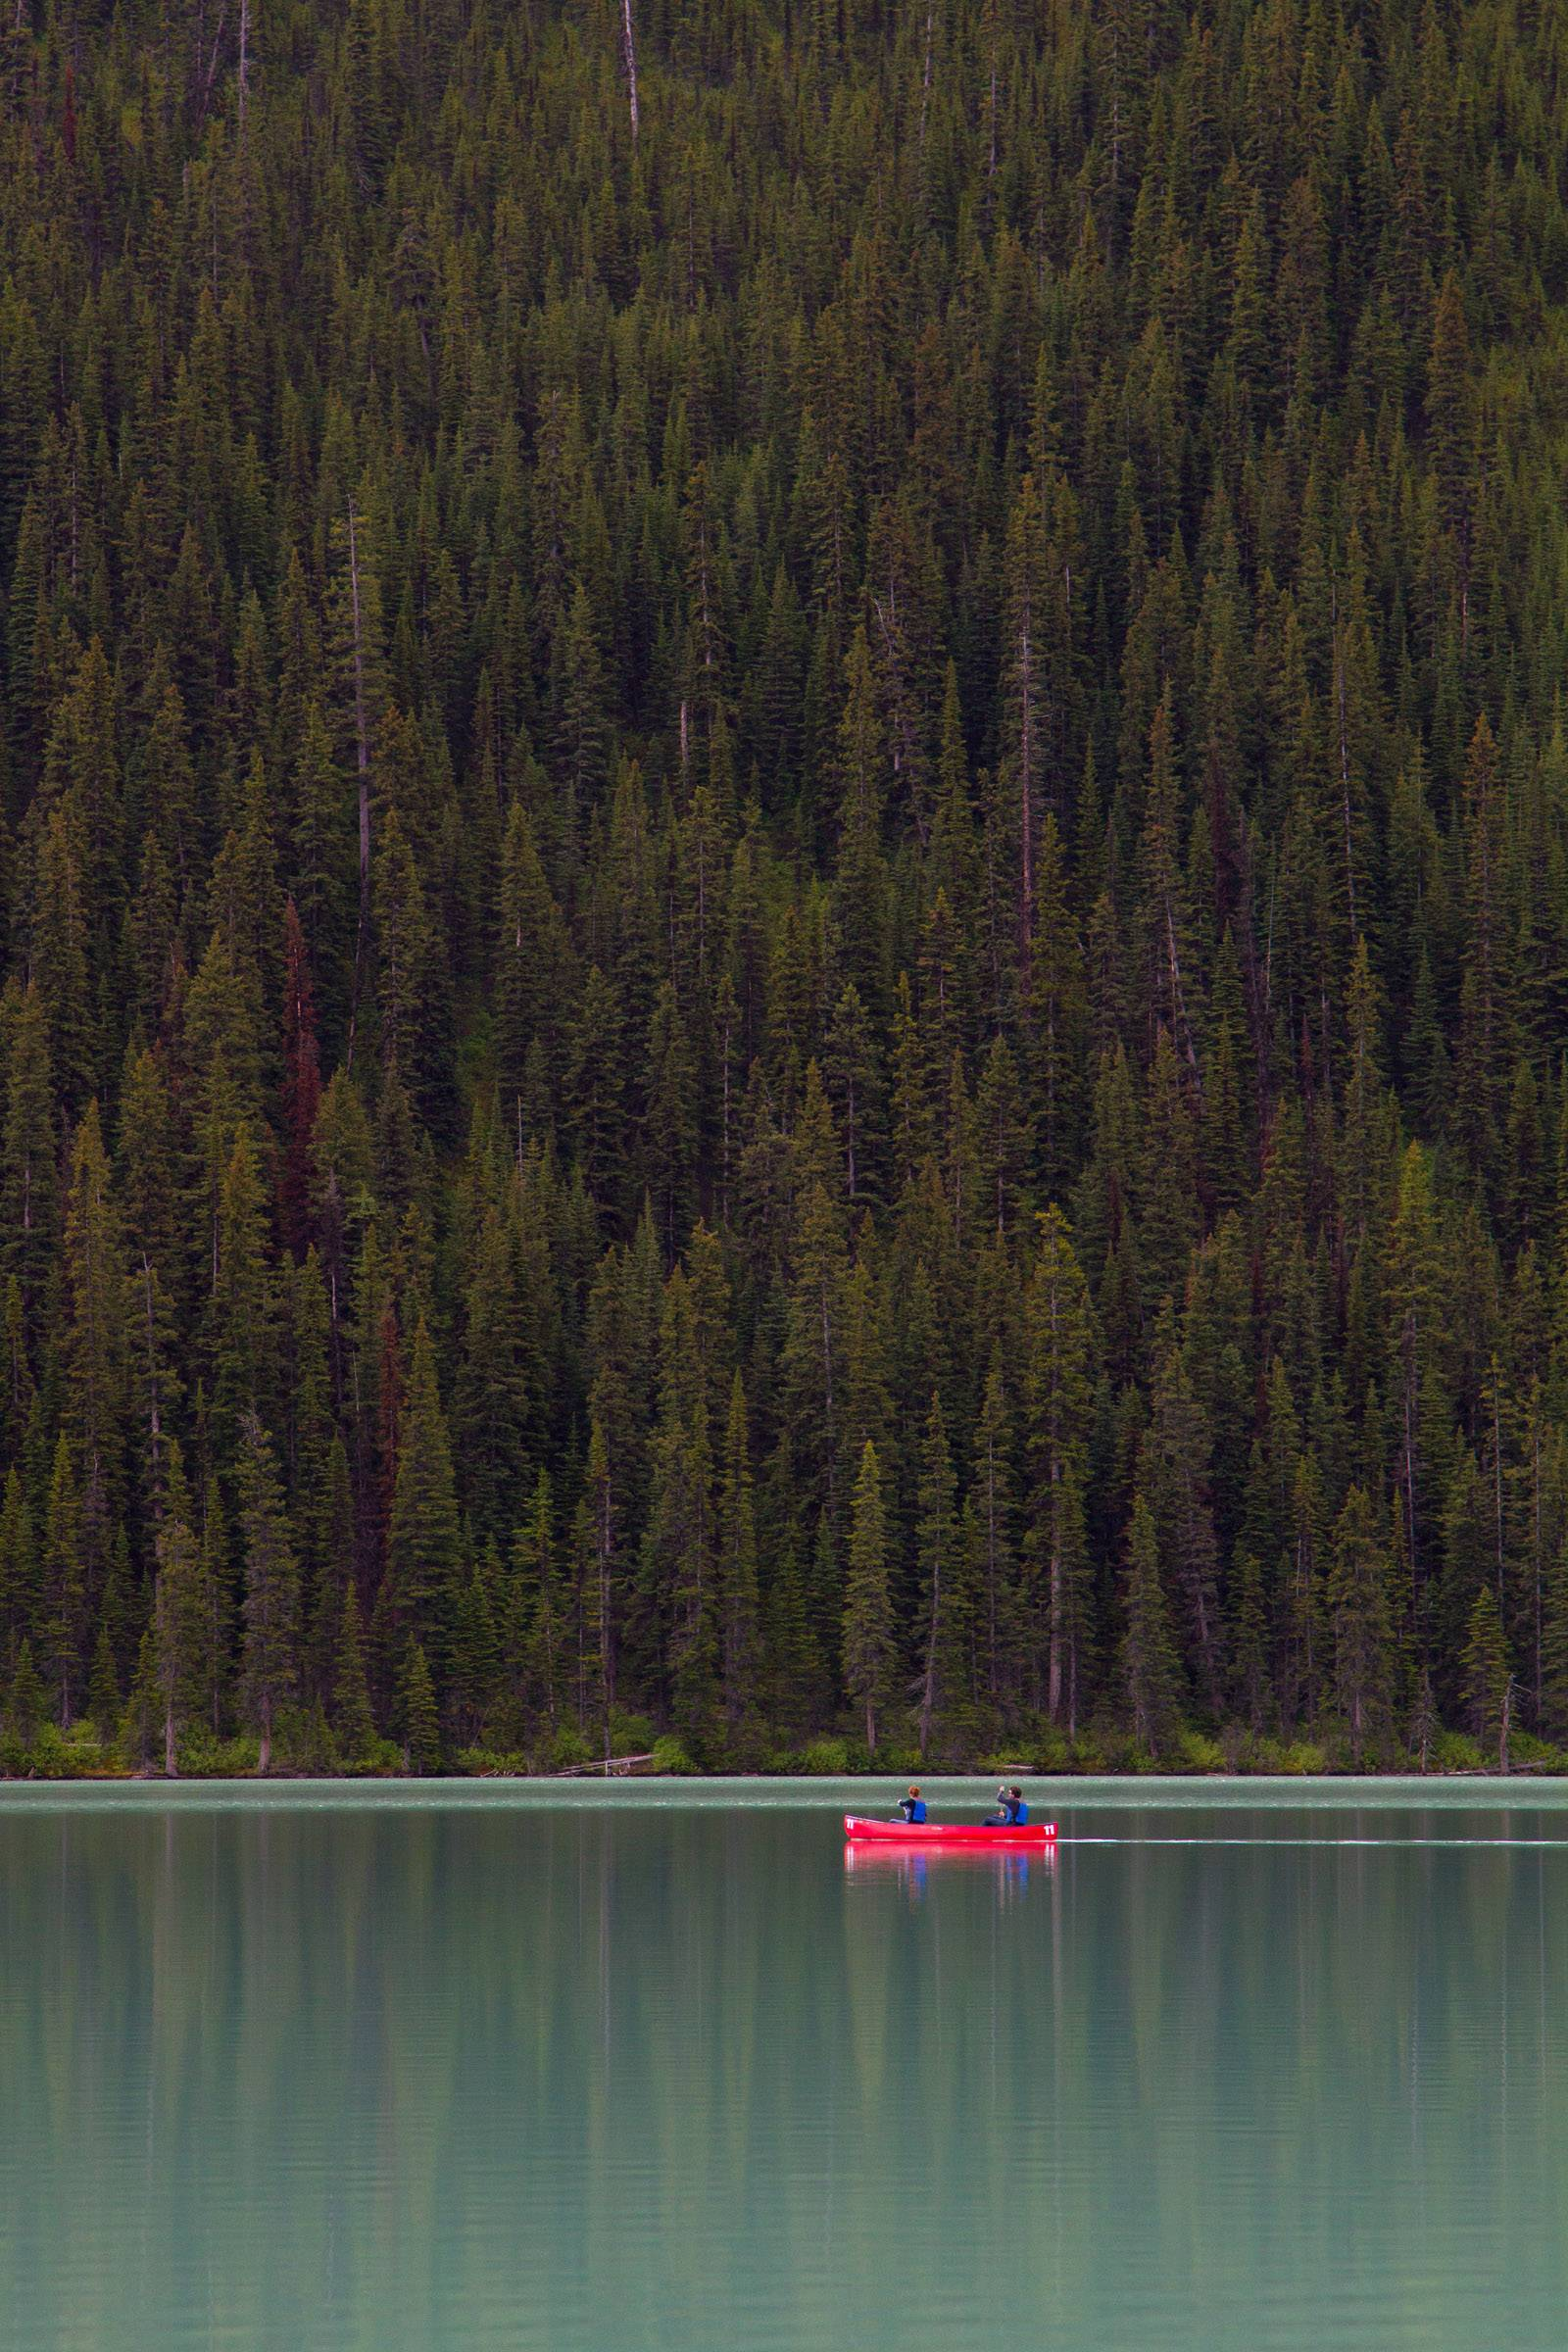 I took a motorcycle trip to Alaska last June and stopped at Lake Louise in Alberta, Canada on the way home. I took this picture near the end of a hiking trail that starts at Chateau Lake Louise and goes to the end of the lake. I really liked the image of the canoe crossing the vertical stand of trees on the far shore.